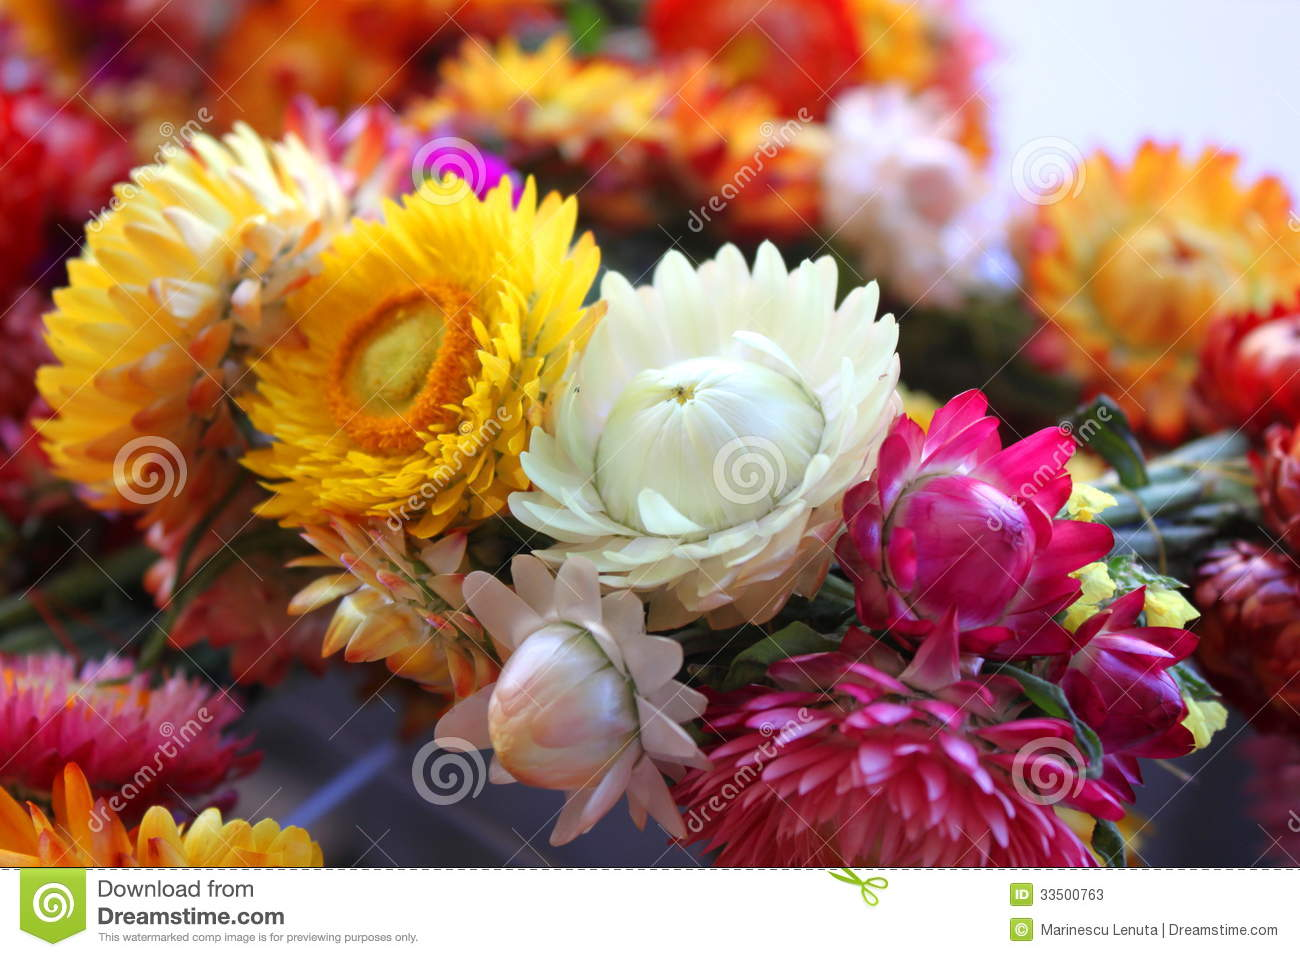 Helychrysum immortelle flowers stock photos image for What makes flowers different colors